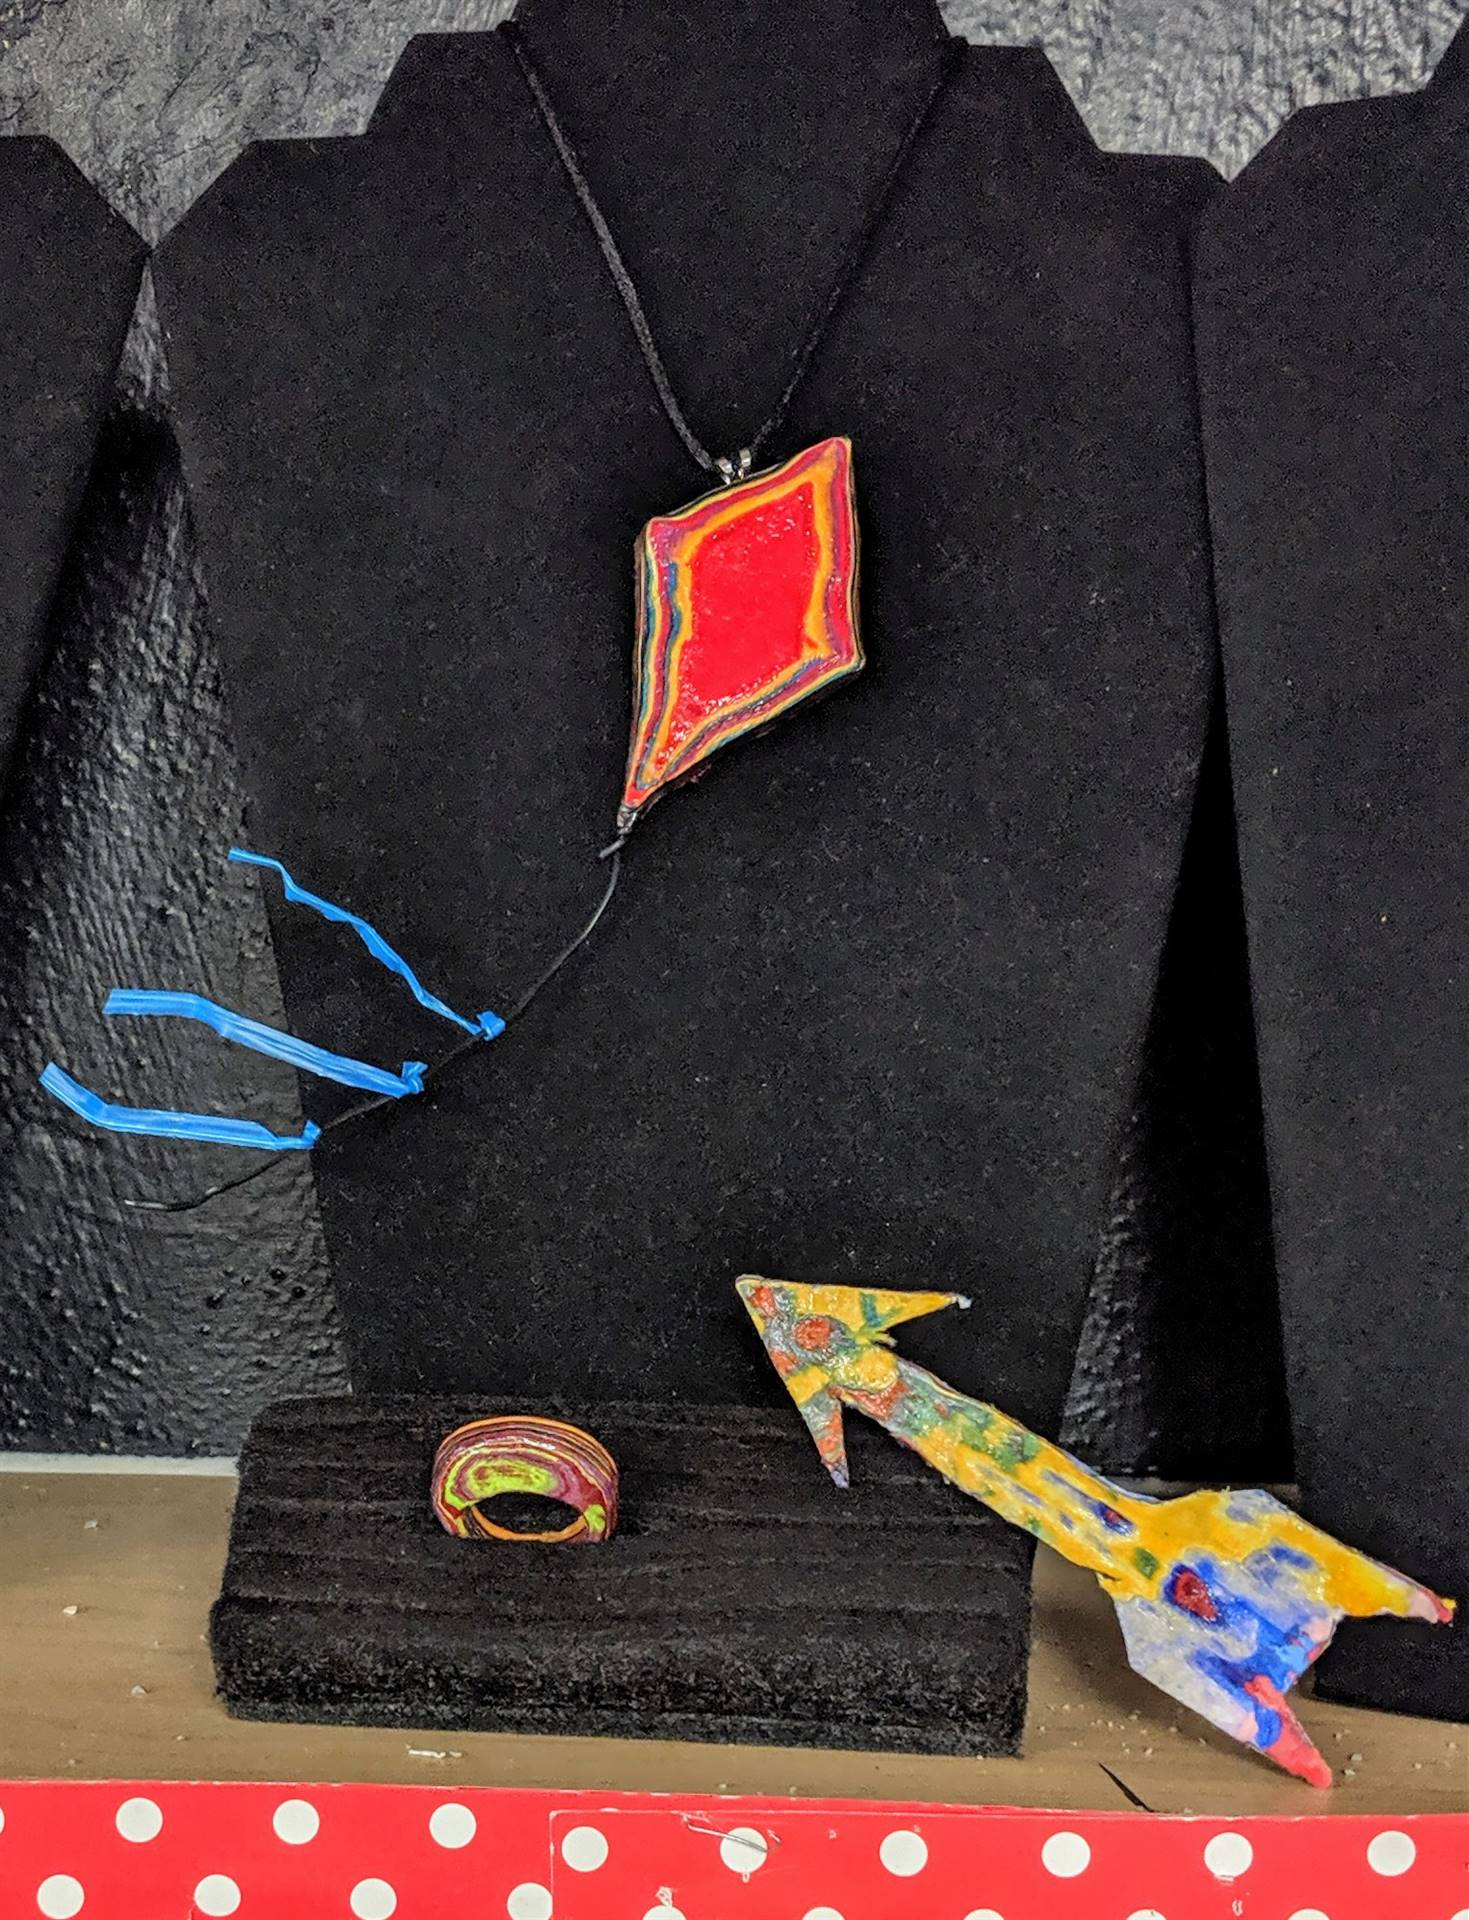 Kite Necklace by Mackenzie Sloan, Grade 12